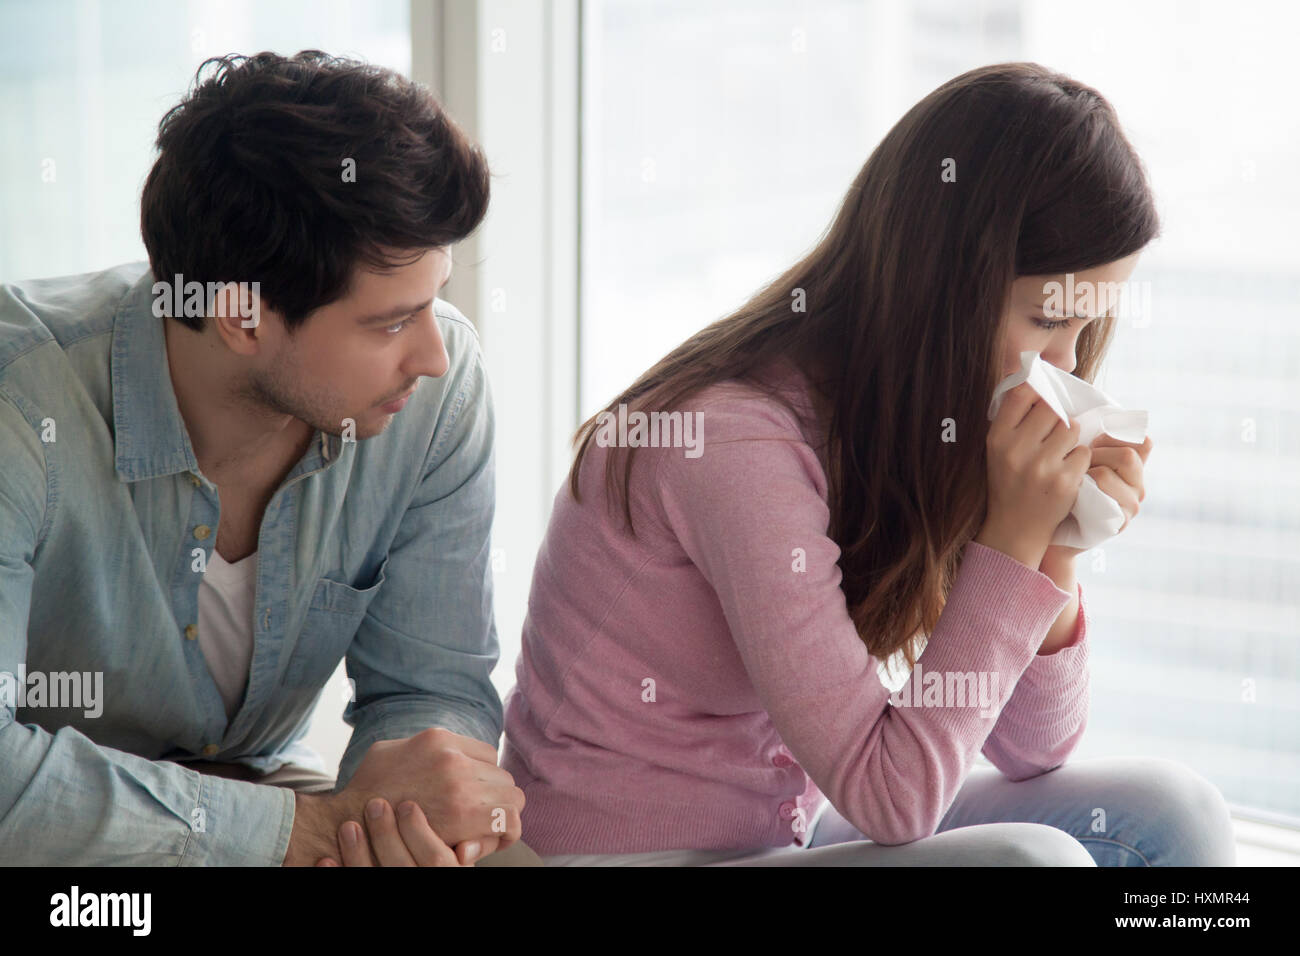 Man comforting upset woman crying, guy consoling weeping young l - Stock Image